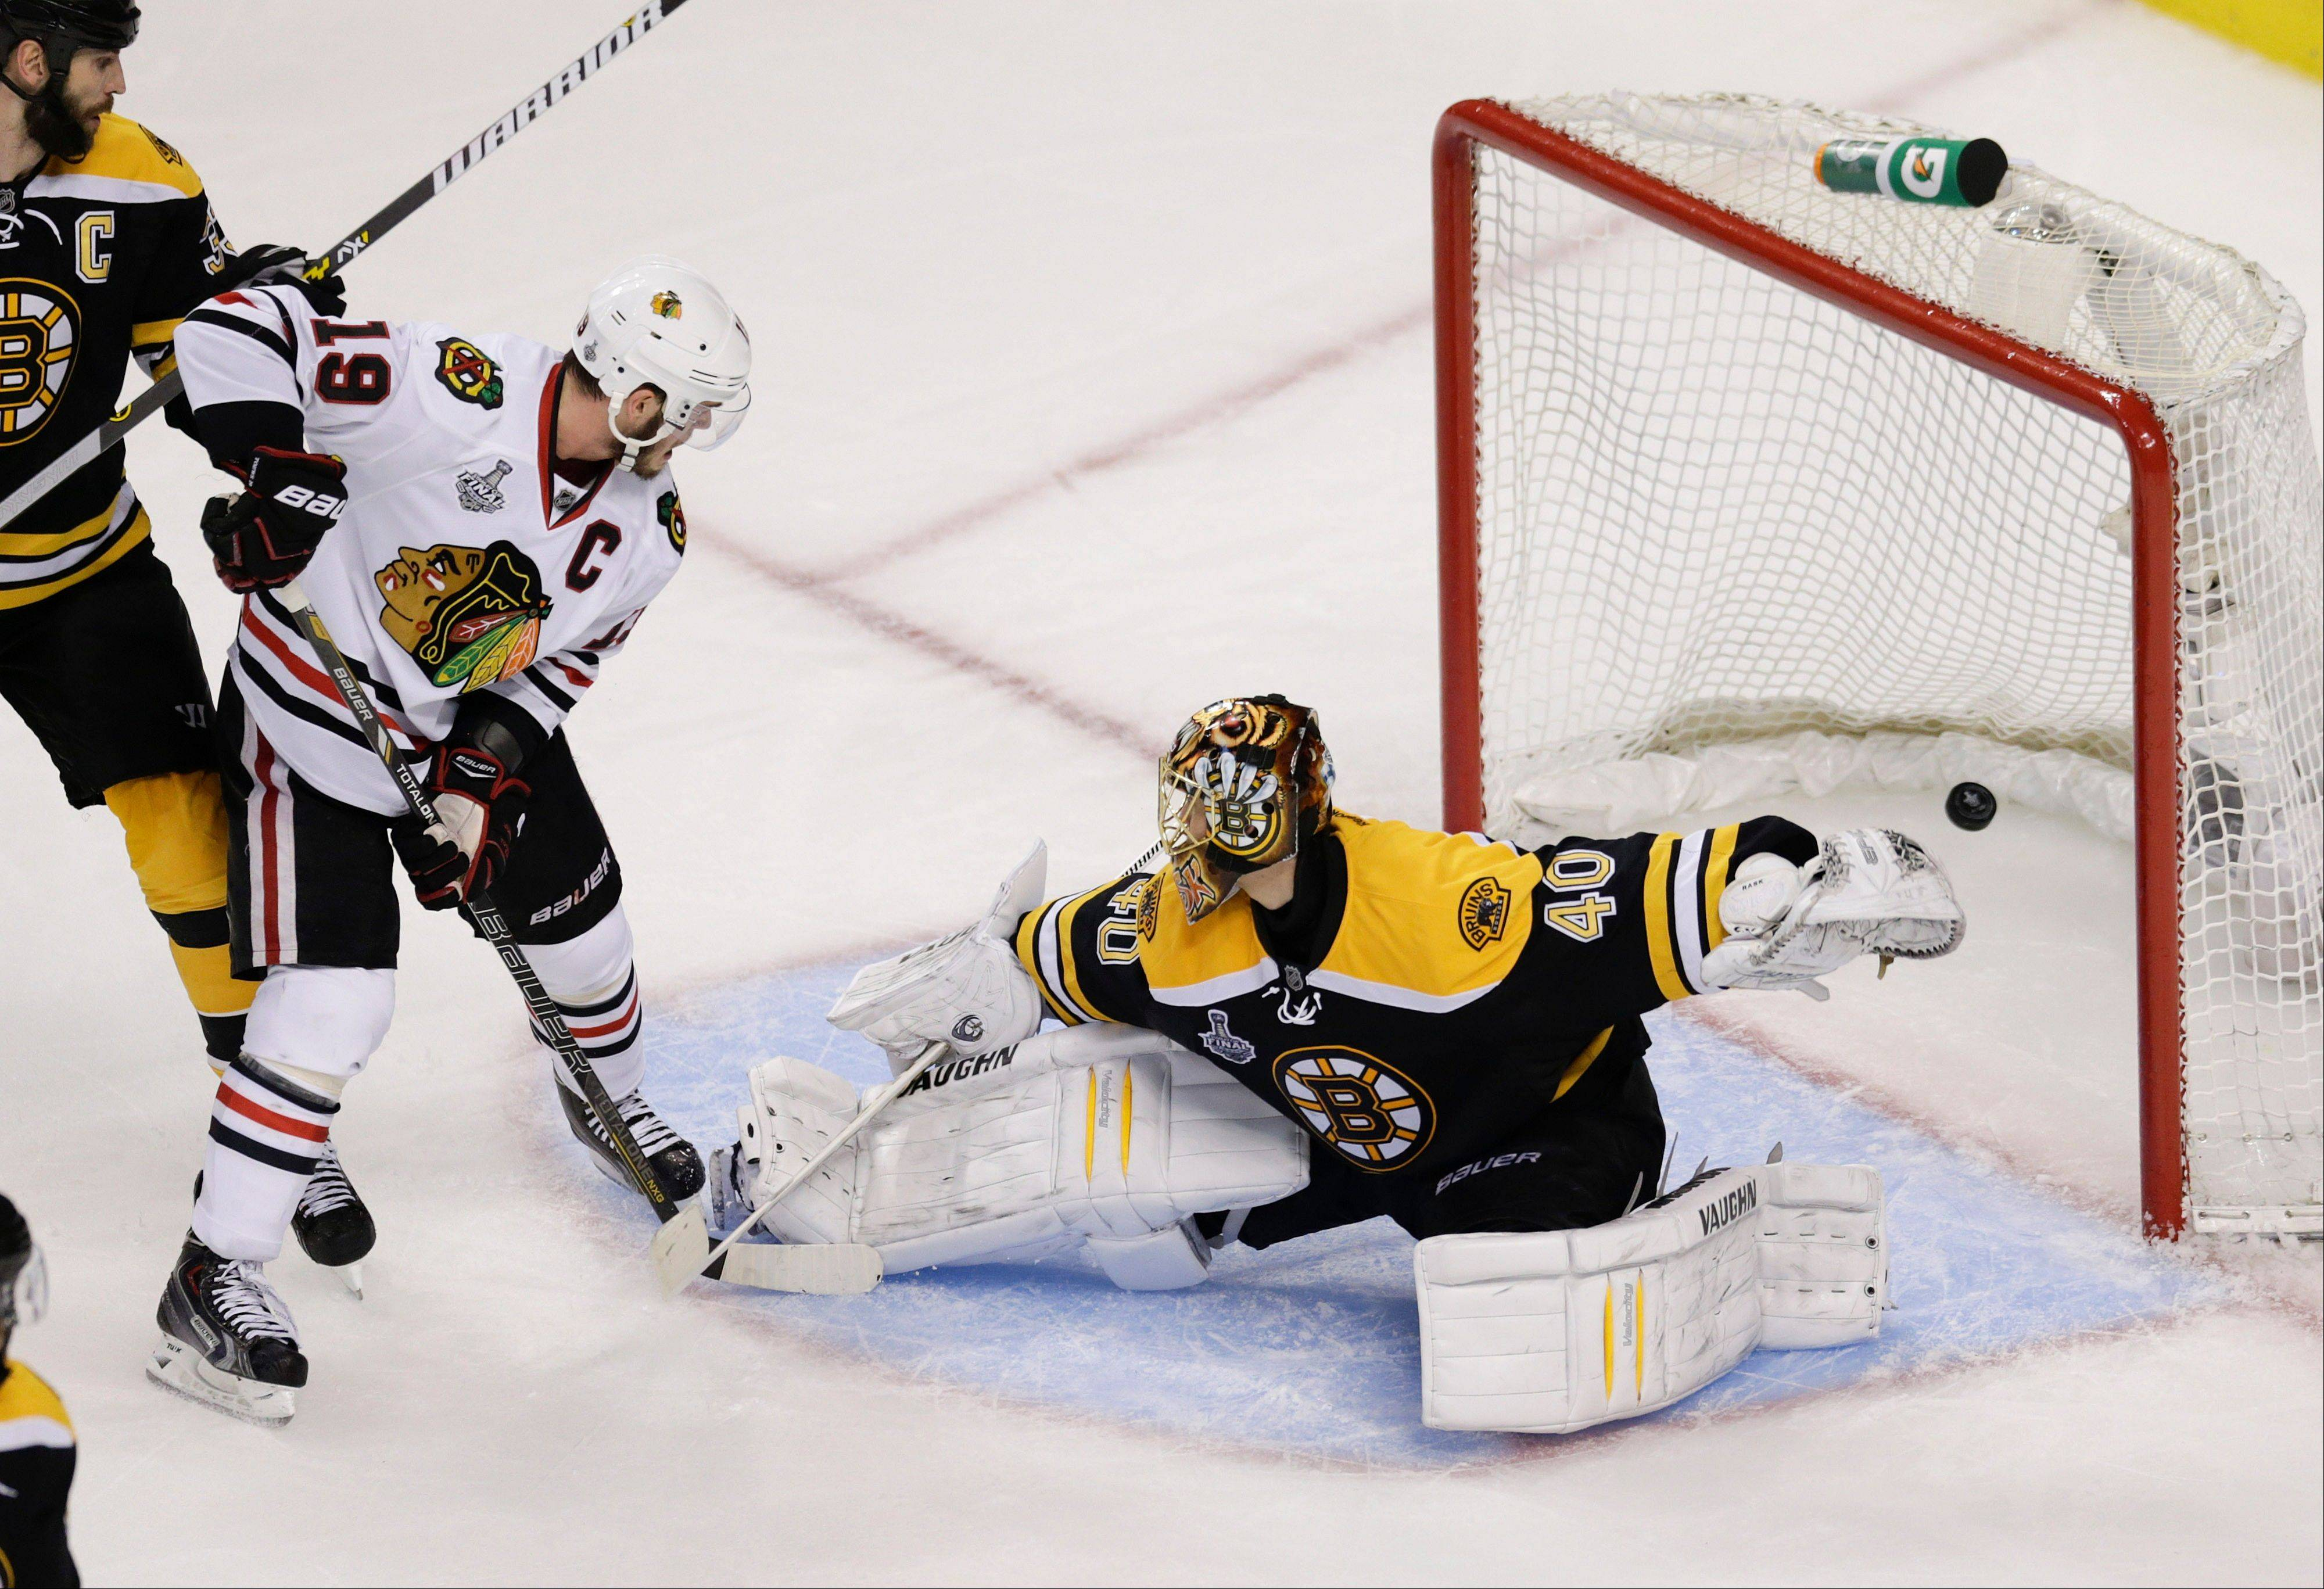 Chicago Blackhawks center Jonathan Toews (19) watches the winning goal by teammate Brent Seabrook, not shown, sail past Boston Bruins goalie Tuukka Rask (40), of Finland, during the first overtime period in Game 4 of the NHL hockey Stanley Cup Finals.